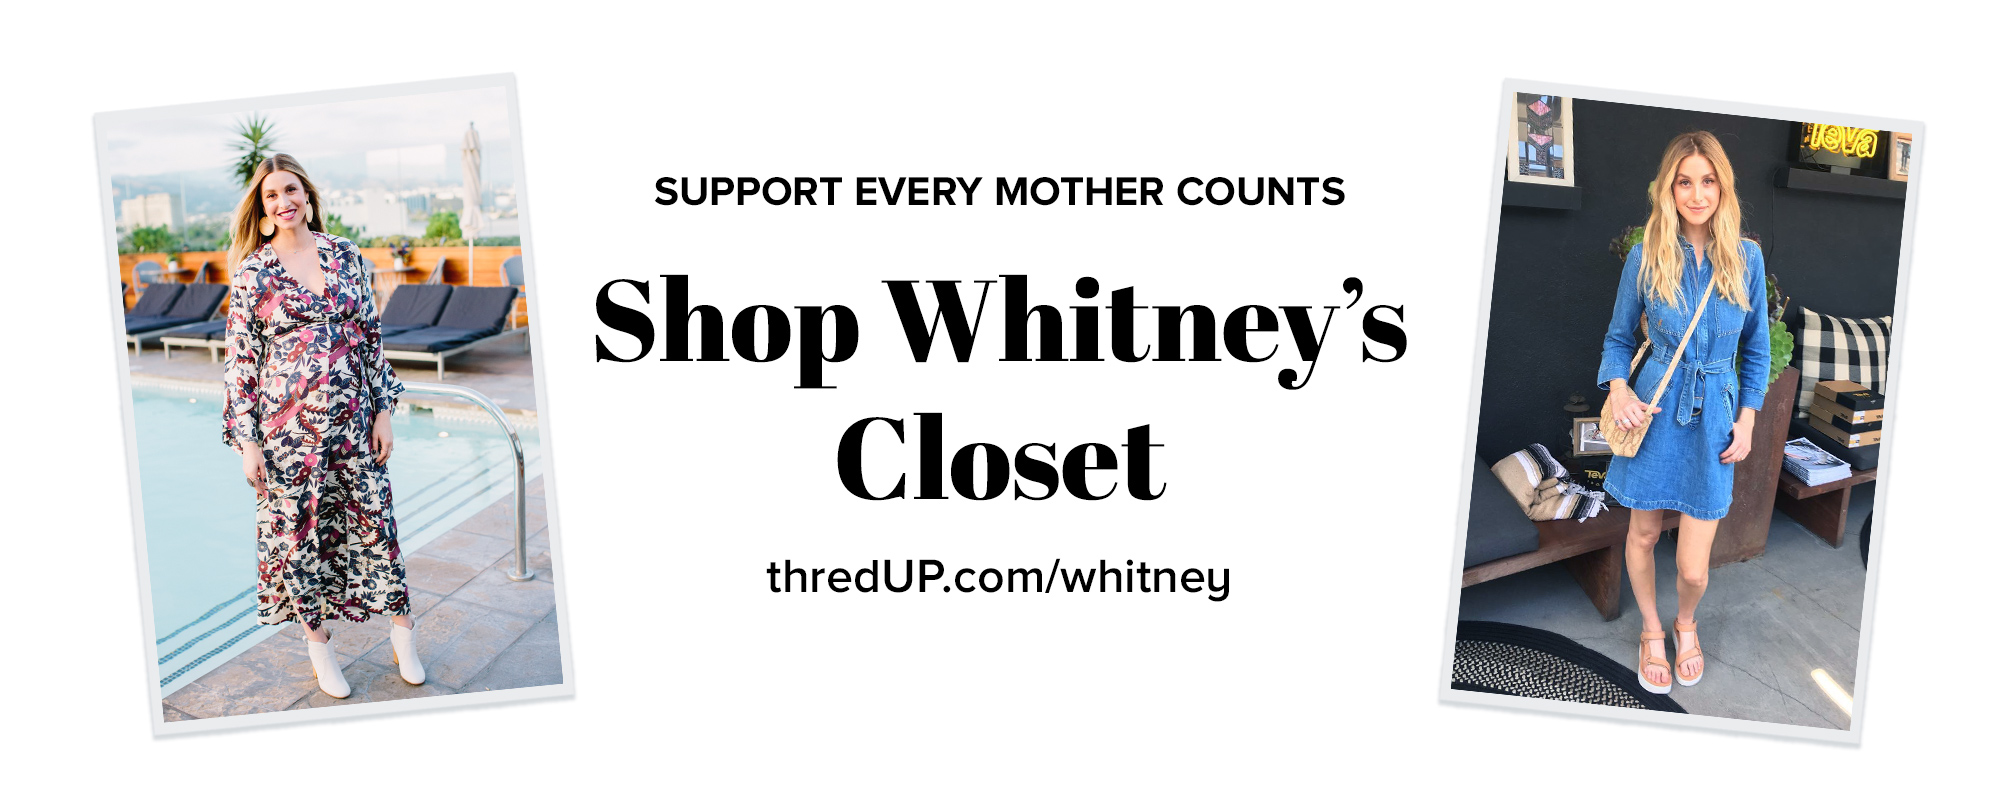 100% of each item's sale price will be donated to Every Mother Counts. thredUP will match every dollar.